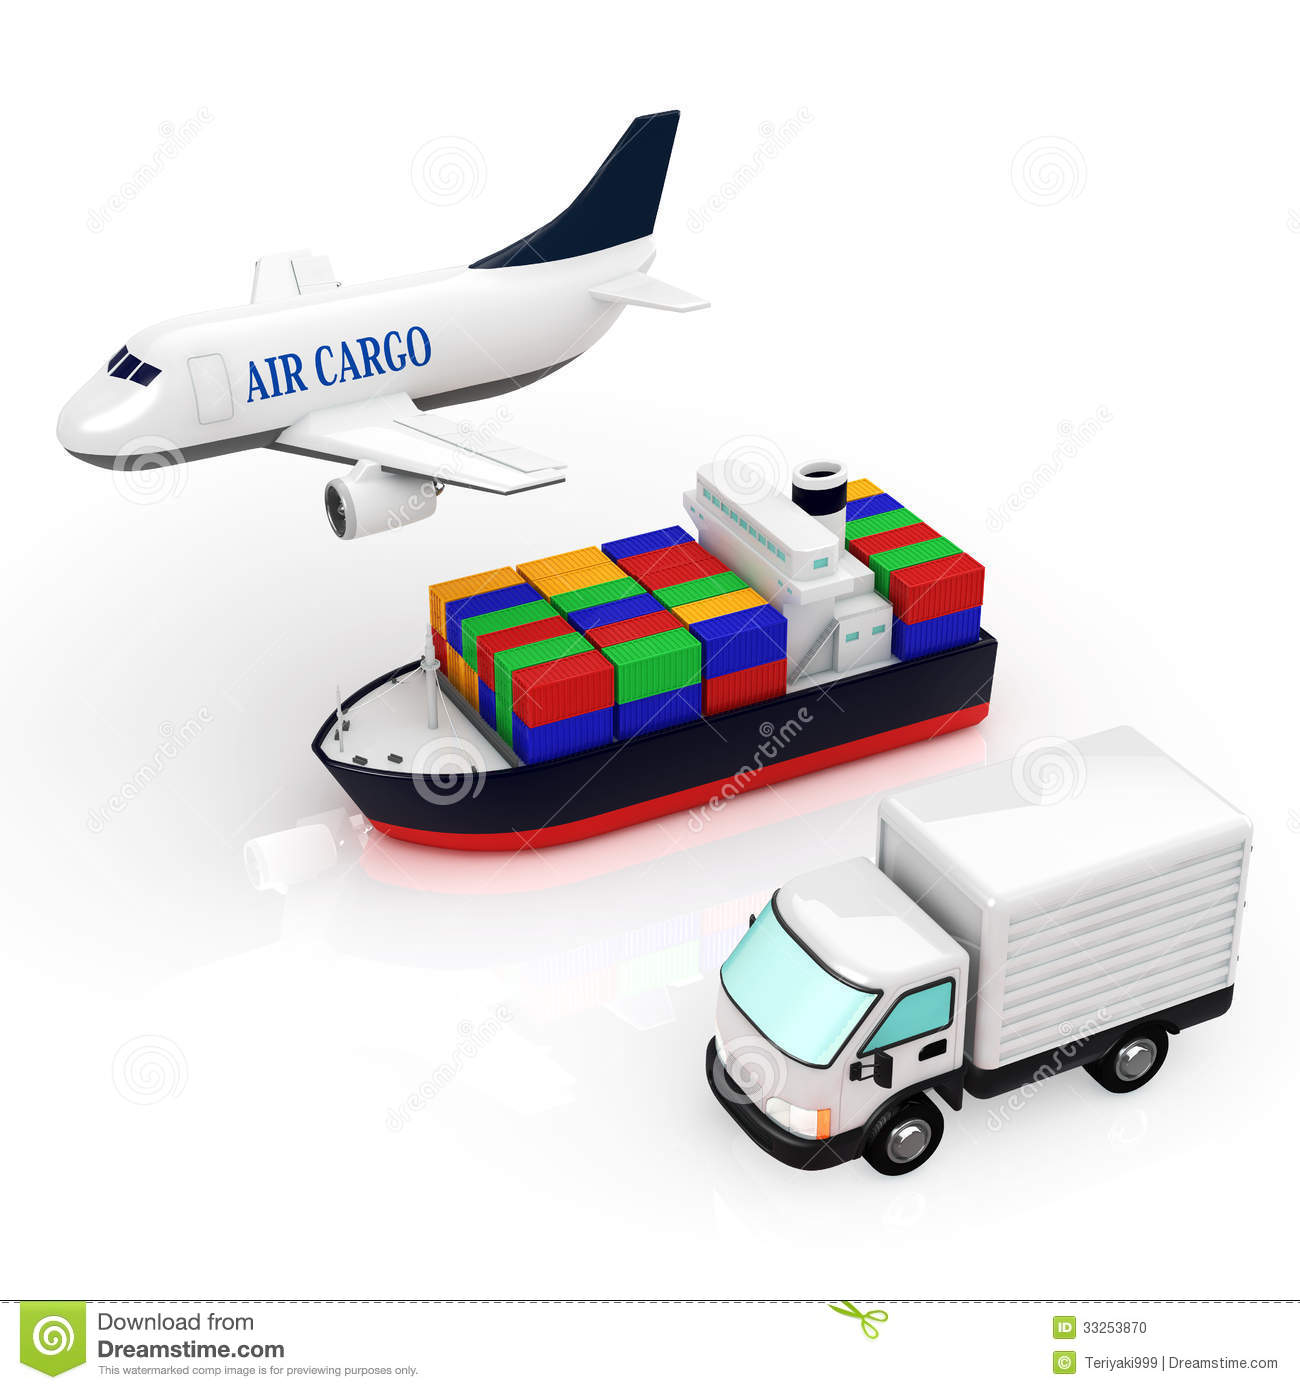 Cargo plane loading clipart black and white stock Cargo plane clipart - ClipartFest black and white stock